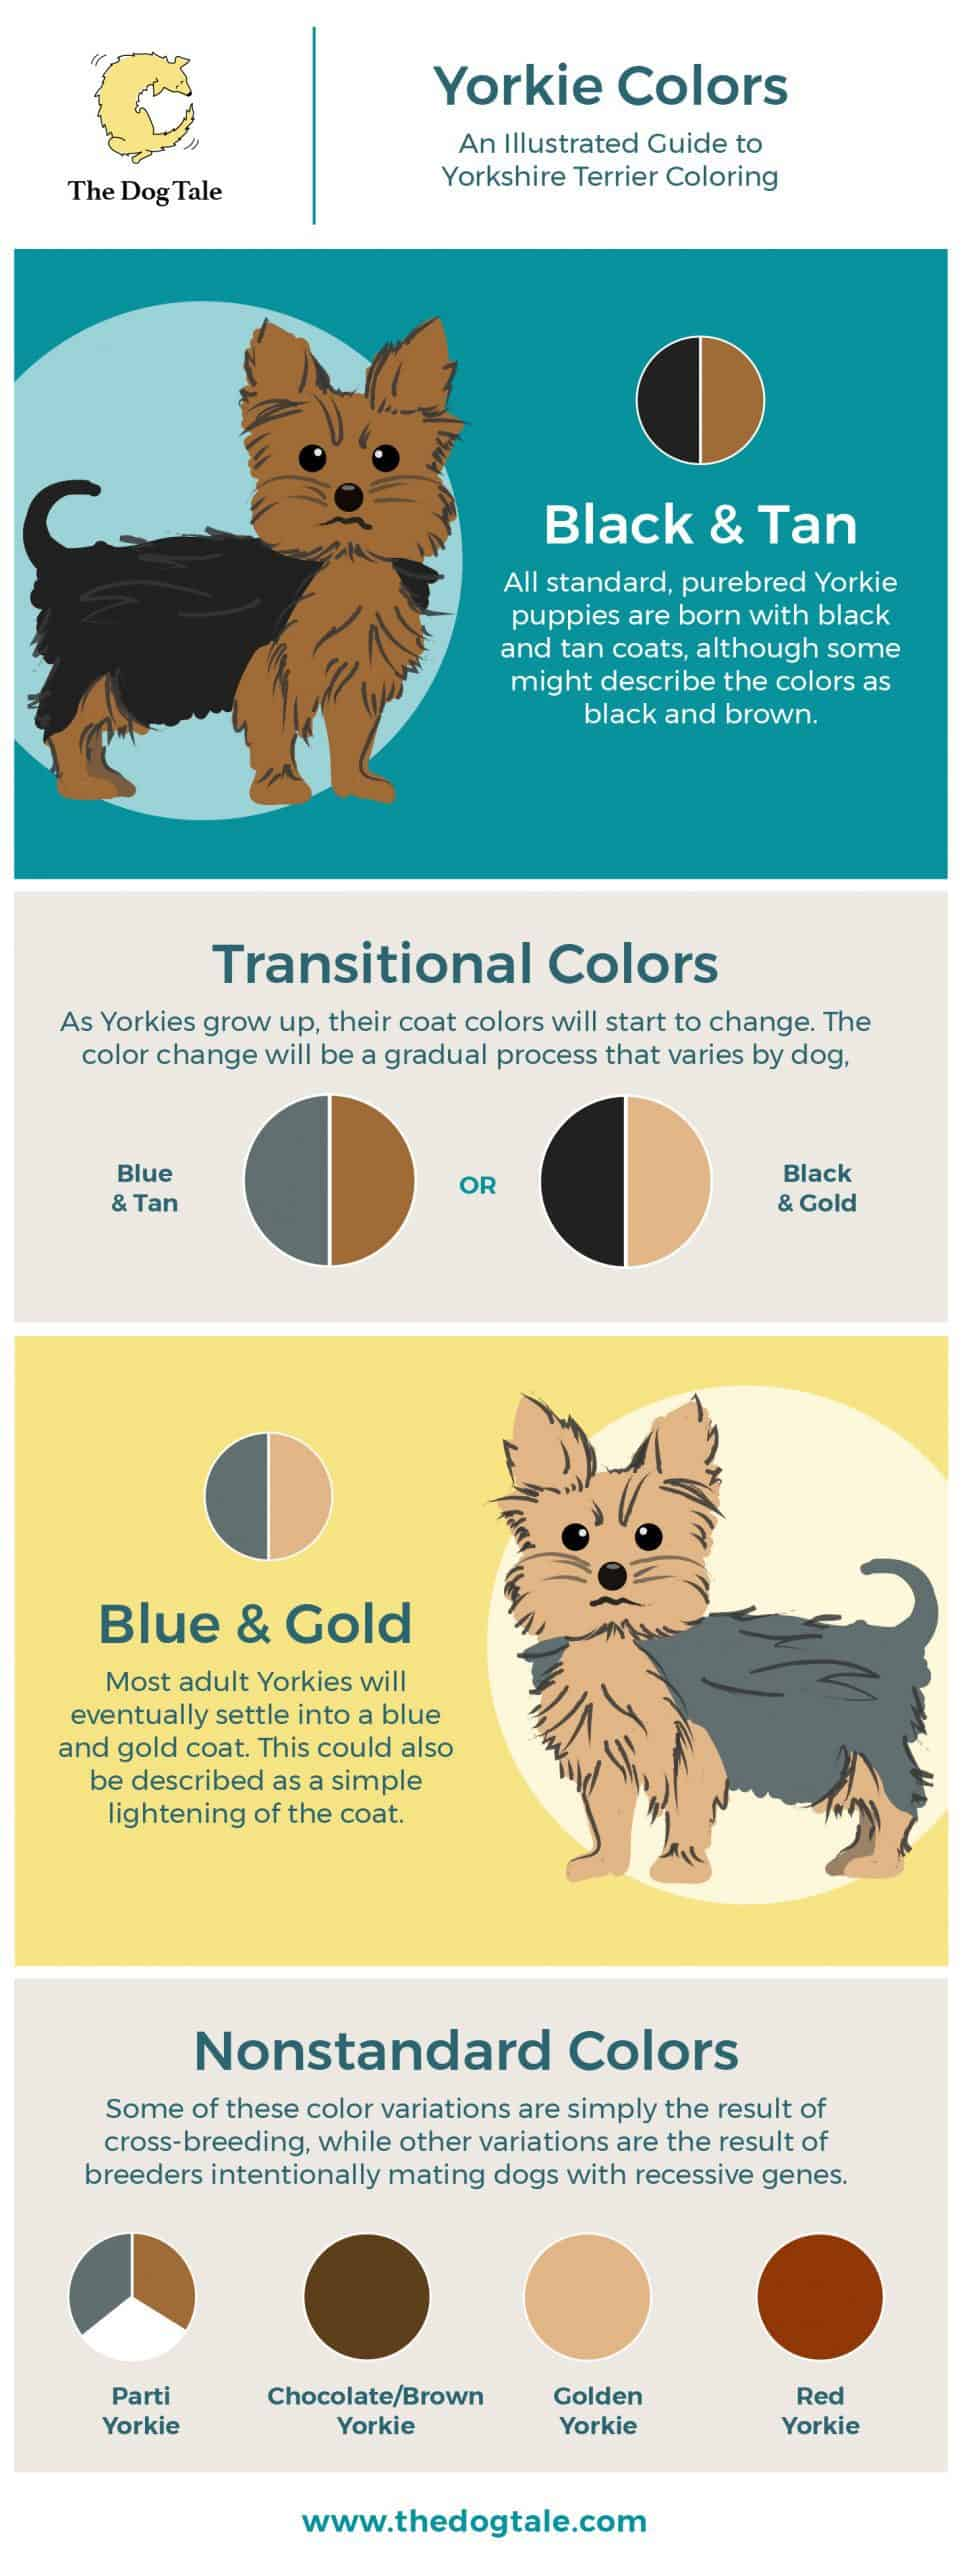 Yorkie Colors An Illustrated Guide To Yorkshire Terrier Coloring